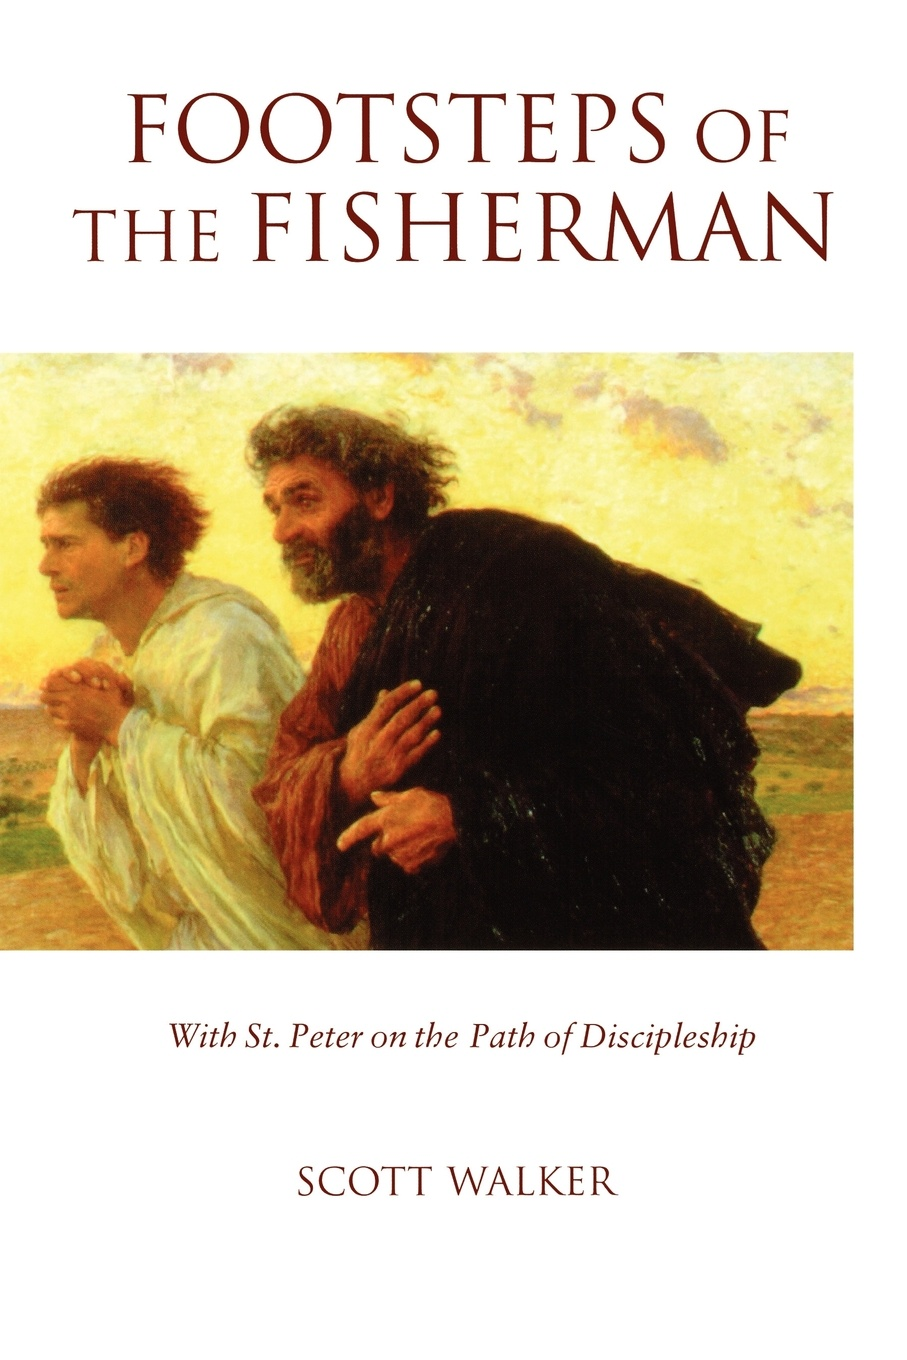 Scott Walker Footsteps of the Fisherman peter felten the undergraduate experience focusing institutions on what matters most